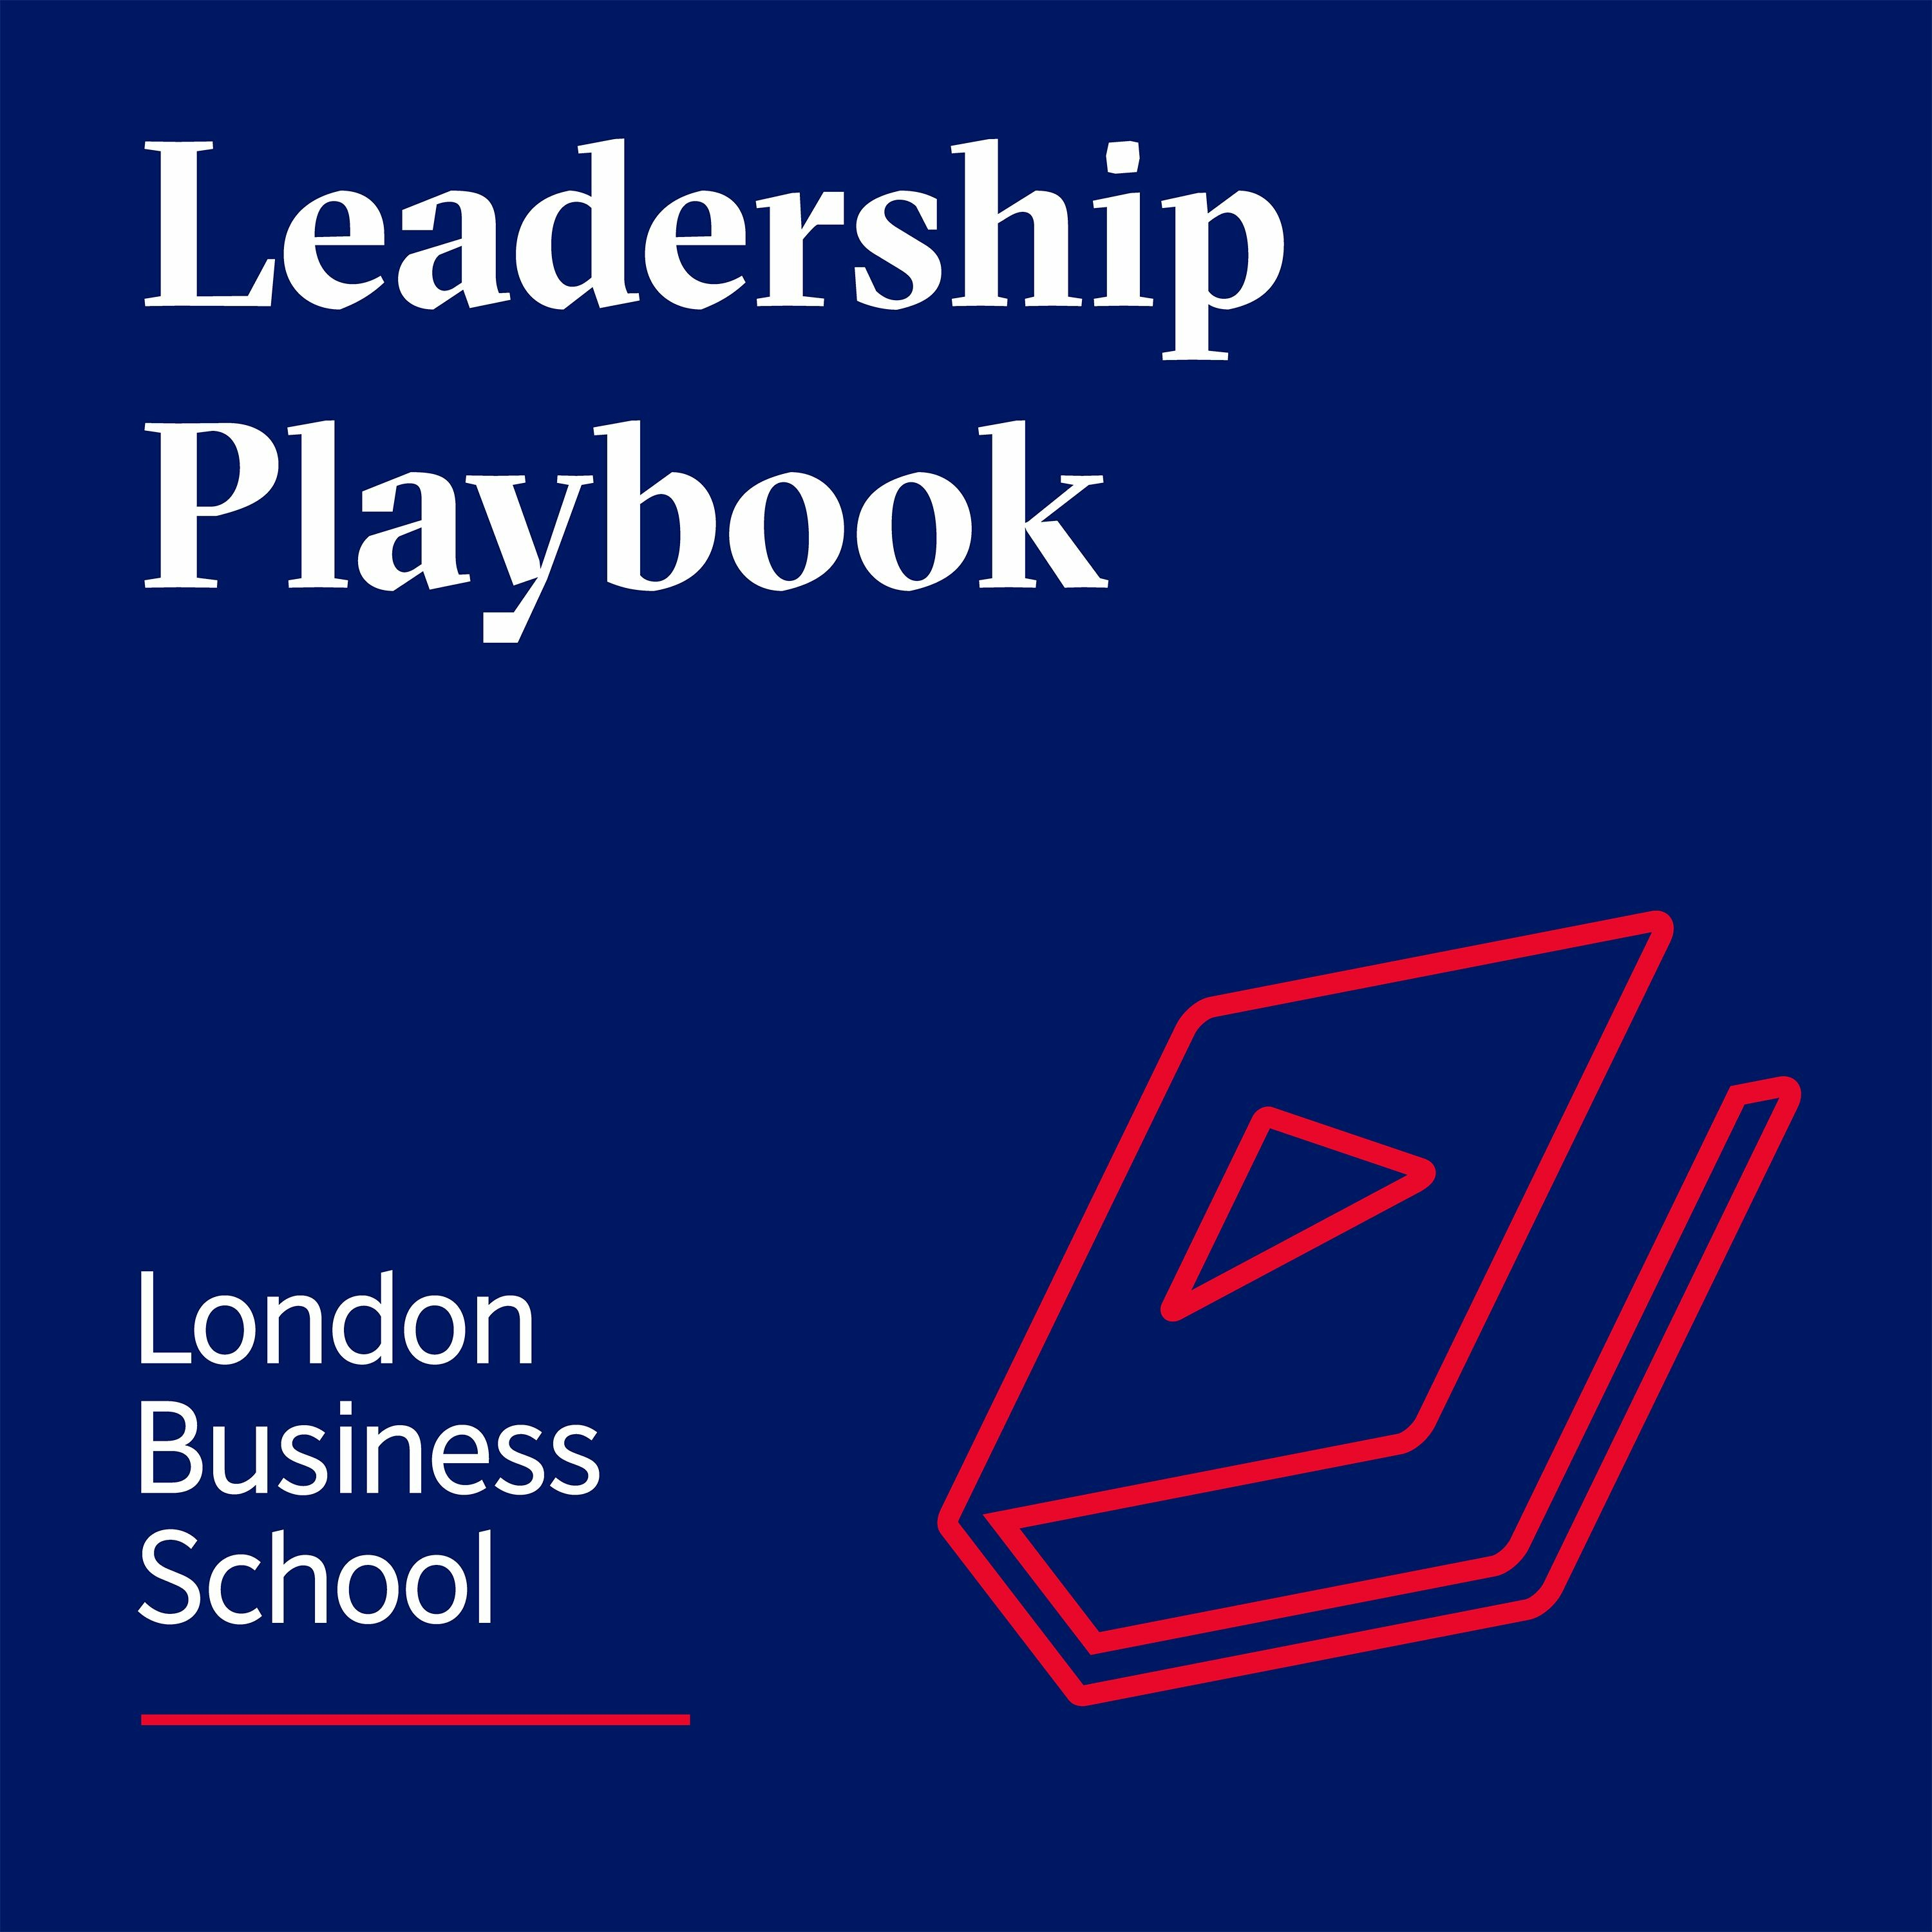 Leadership playbook – What does it take to build an ethical culture?